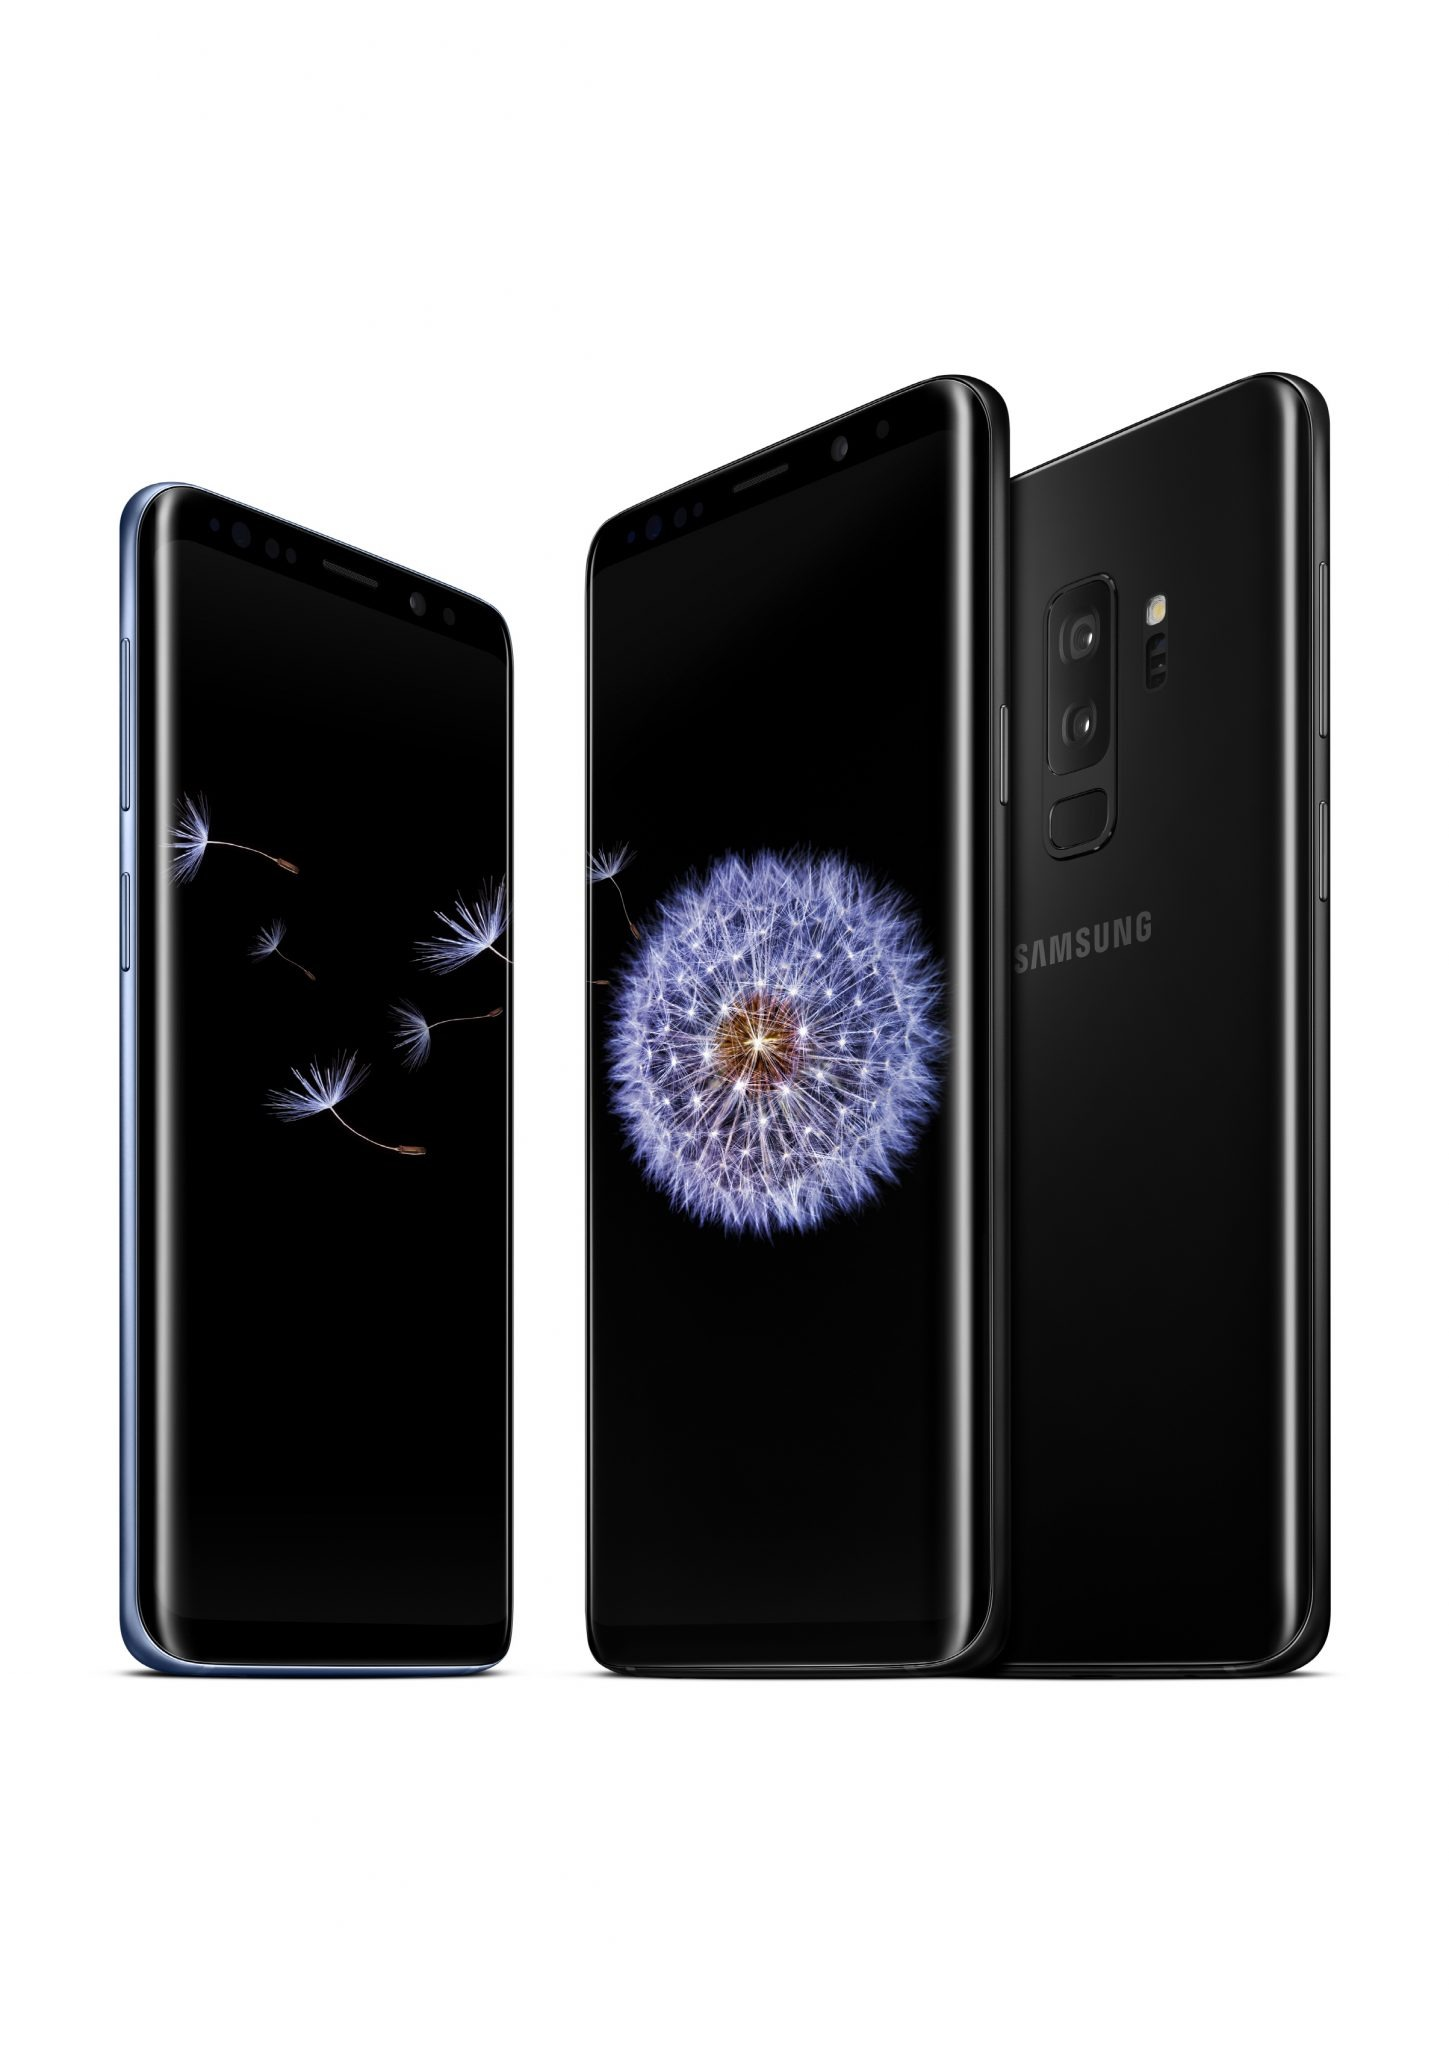 Download Official Samsung Galaxy S9 Wallpapers in High Quality 1